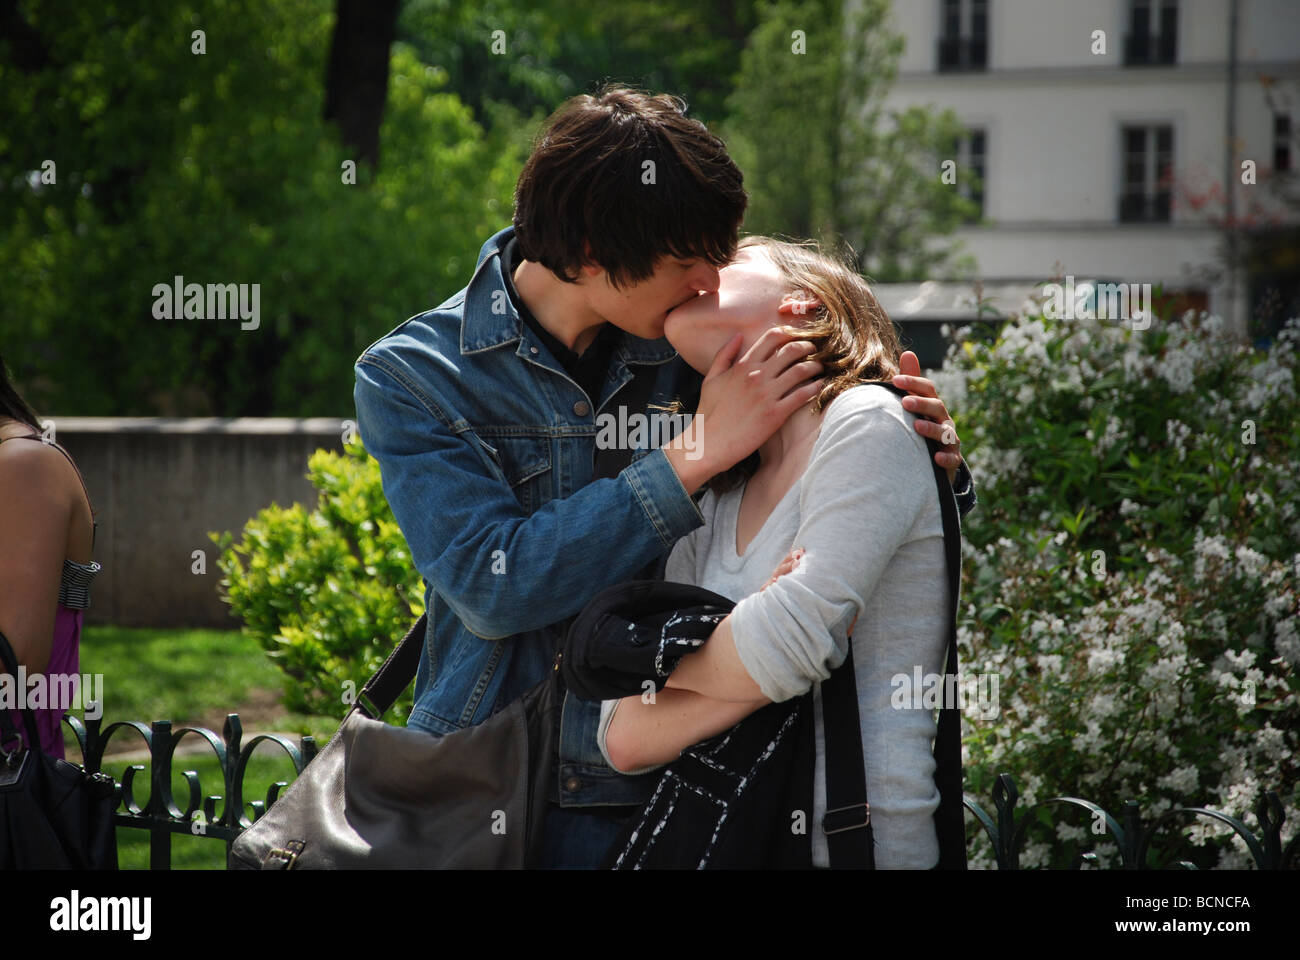 French Kiss Couple Images young french couple kissing, paris france stock photo: 25057070 - alamy